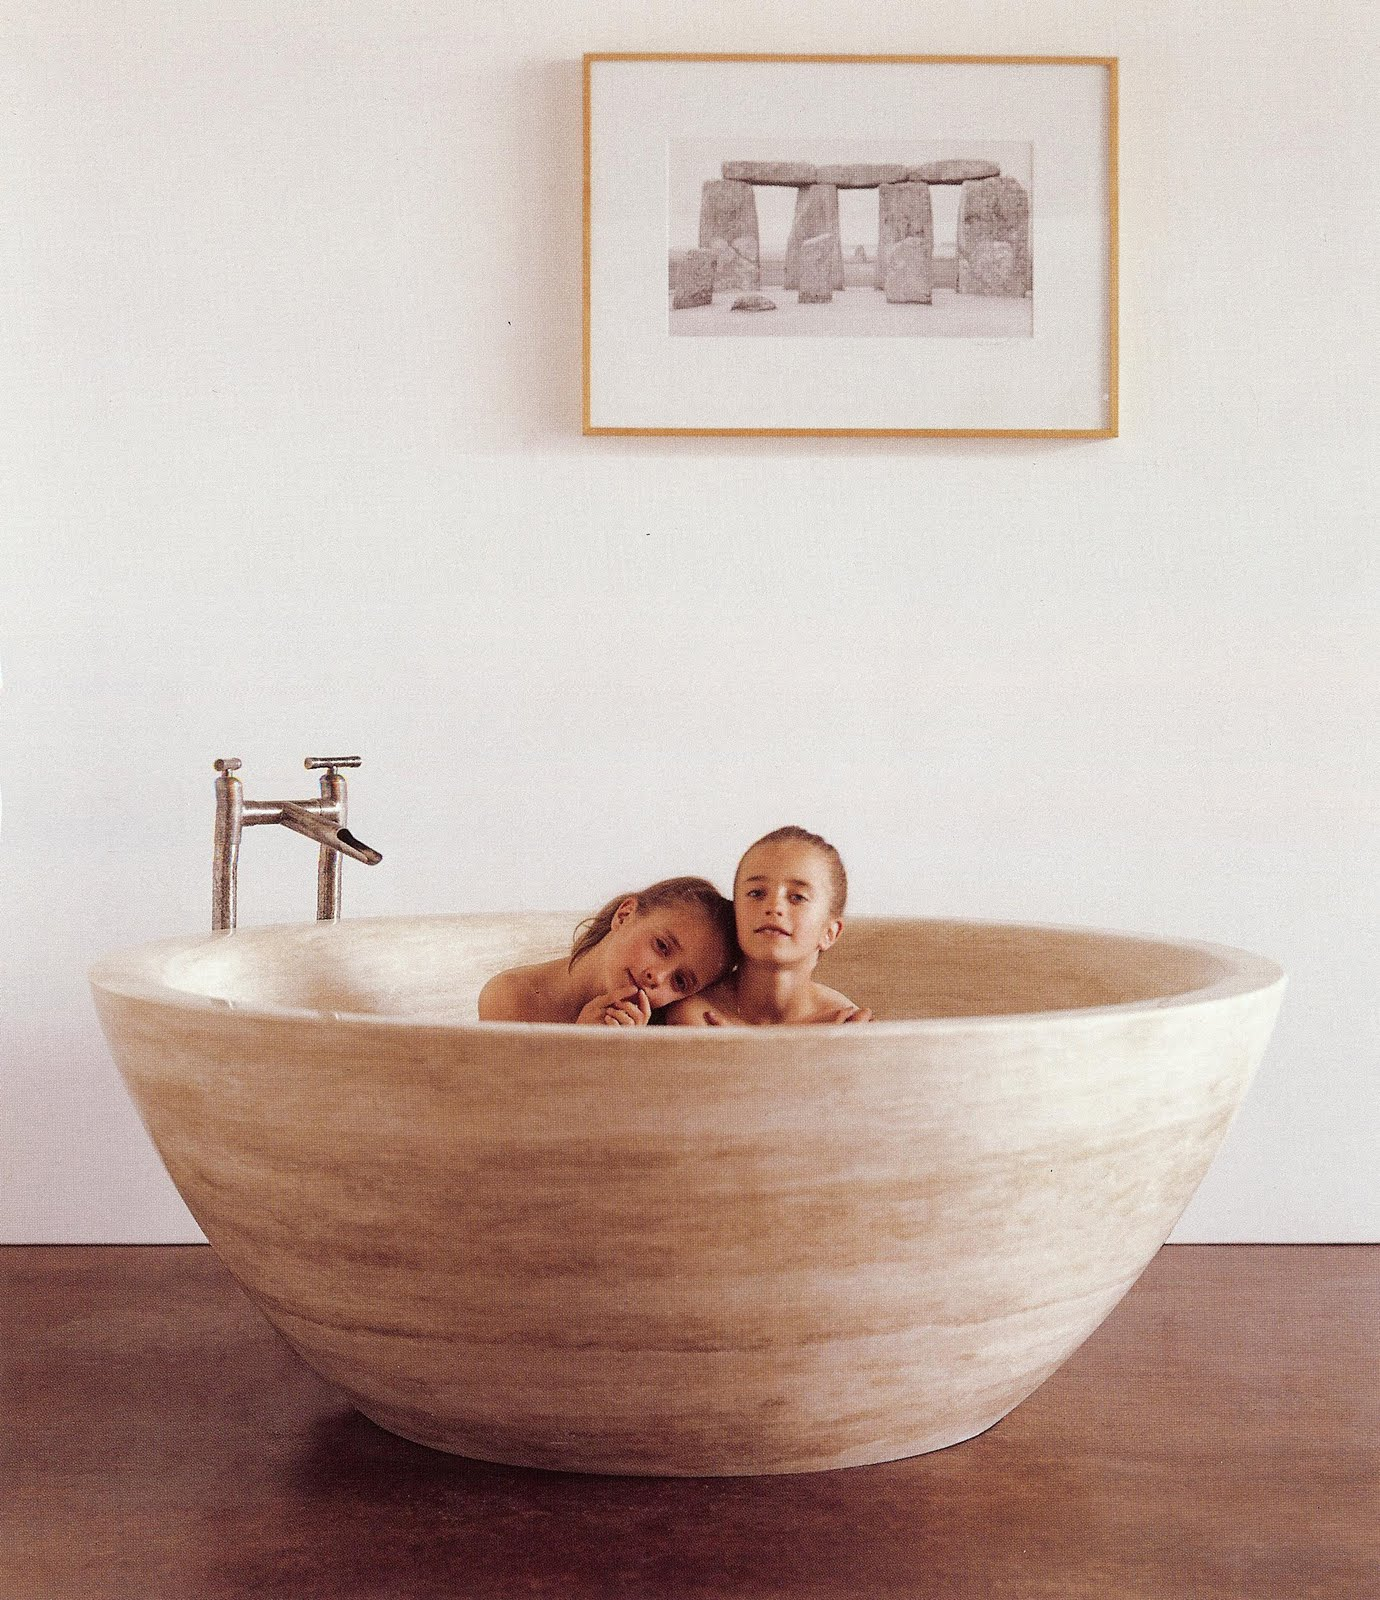 the kitchen and bath people december  - wednesday december